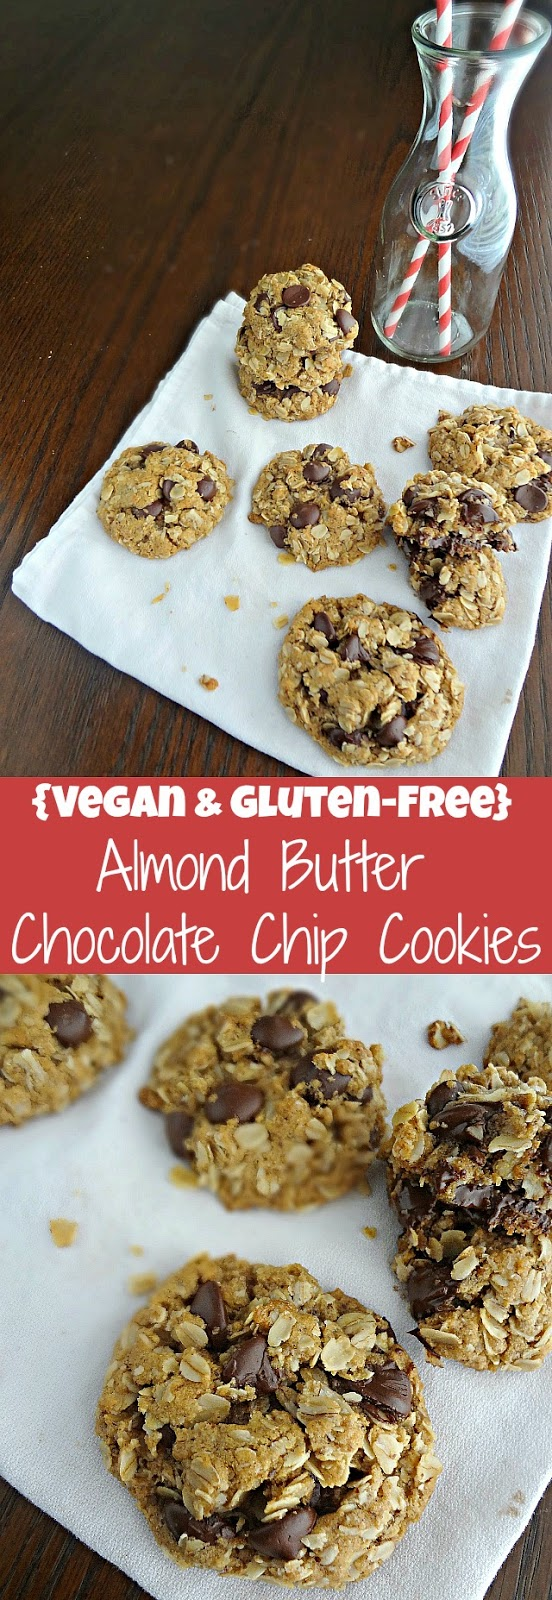 {Vegan & Gluten-free} Almond Butter Chocolate Chip Cookies